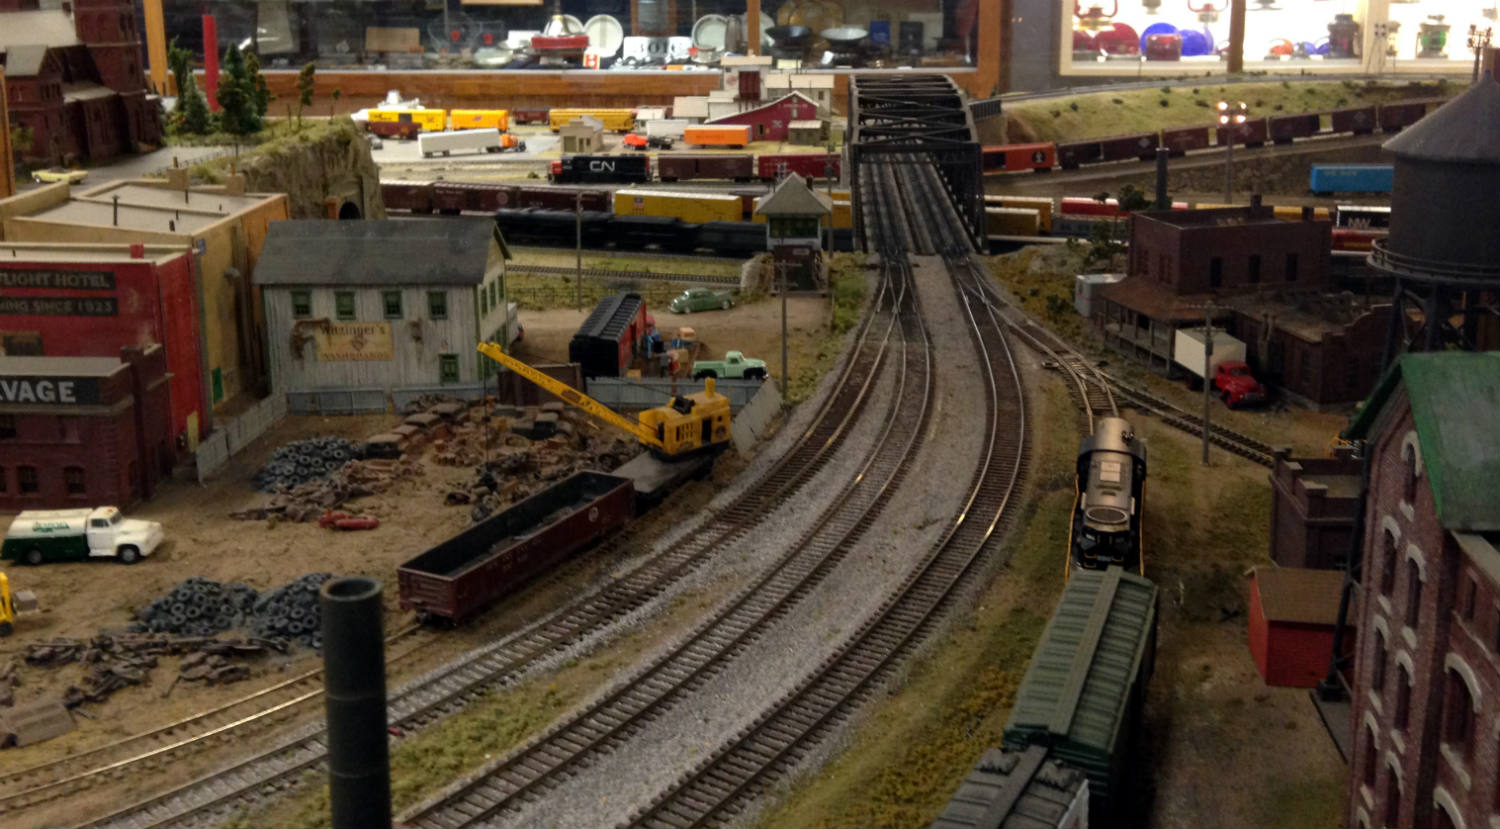 Model Railroad at Medina Railroad Museum in Medina, NY